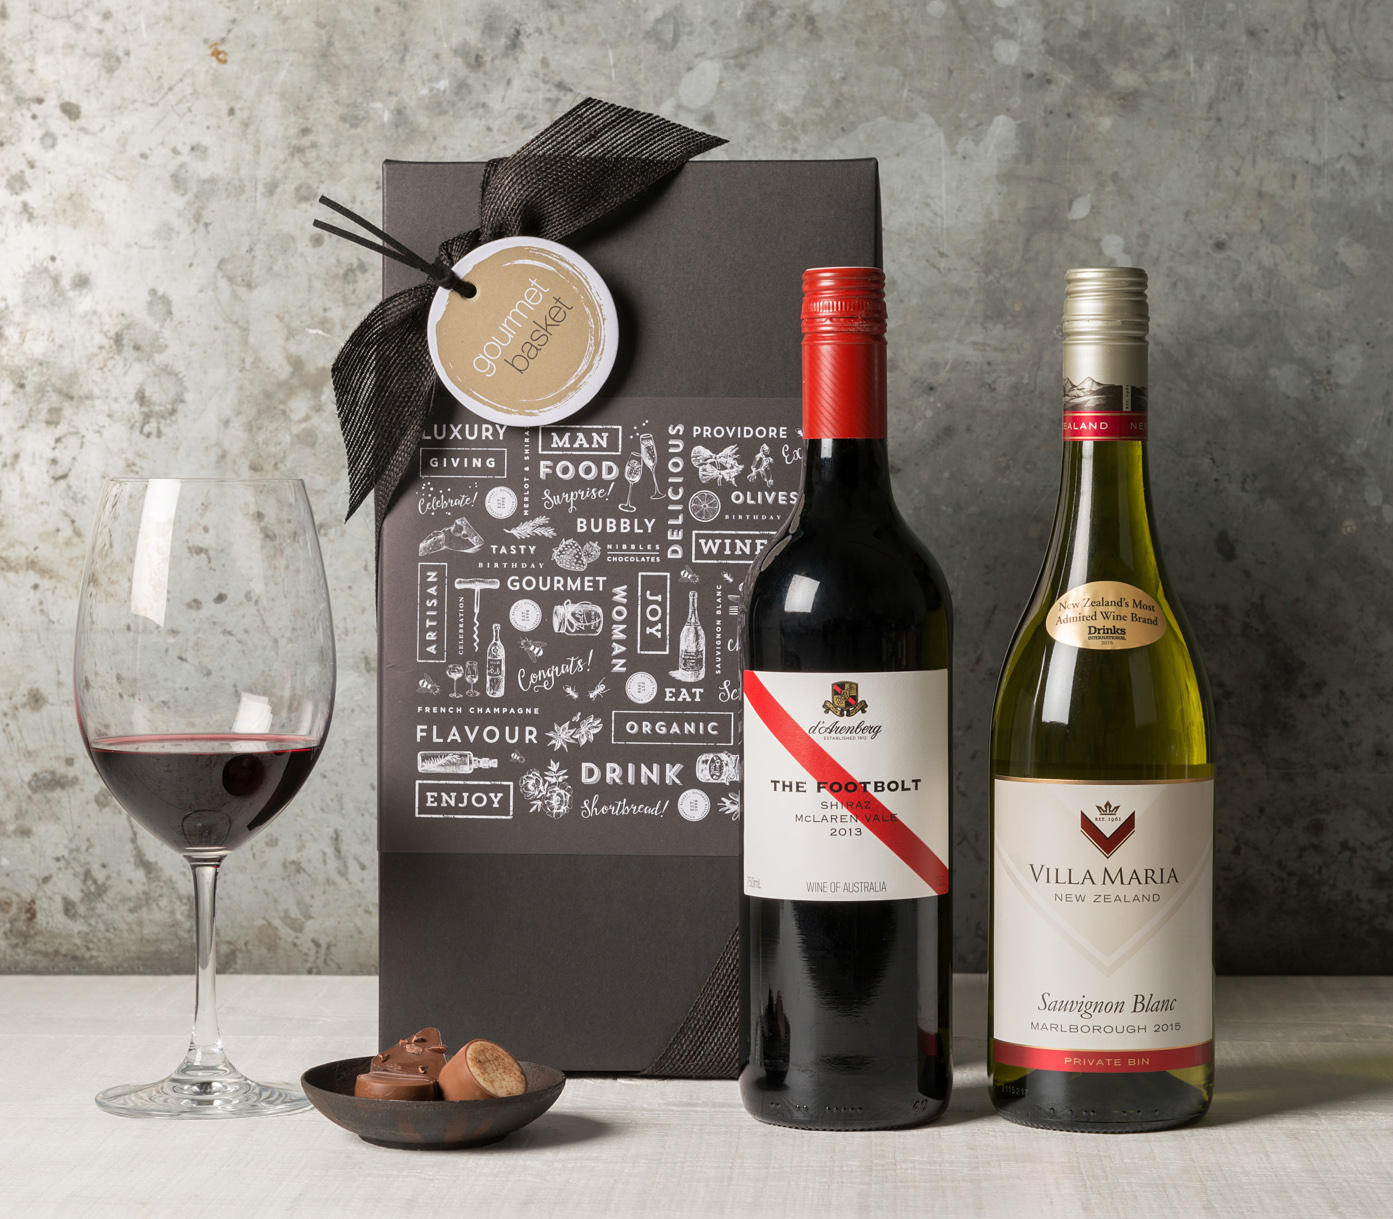 Wedding Gift Delivery Sydney : Wine Duo in Gift Box (From USD55.00) Gift Basket Hamper